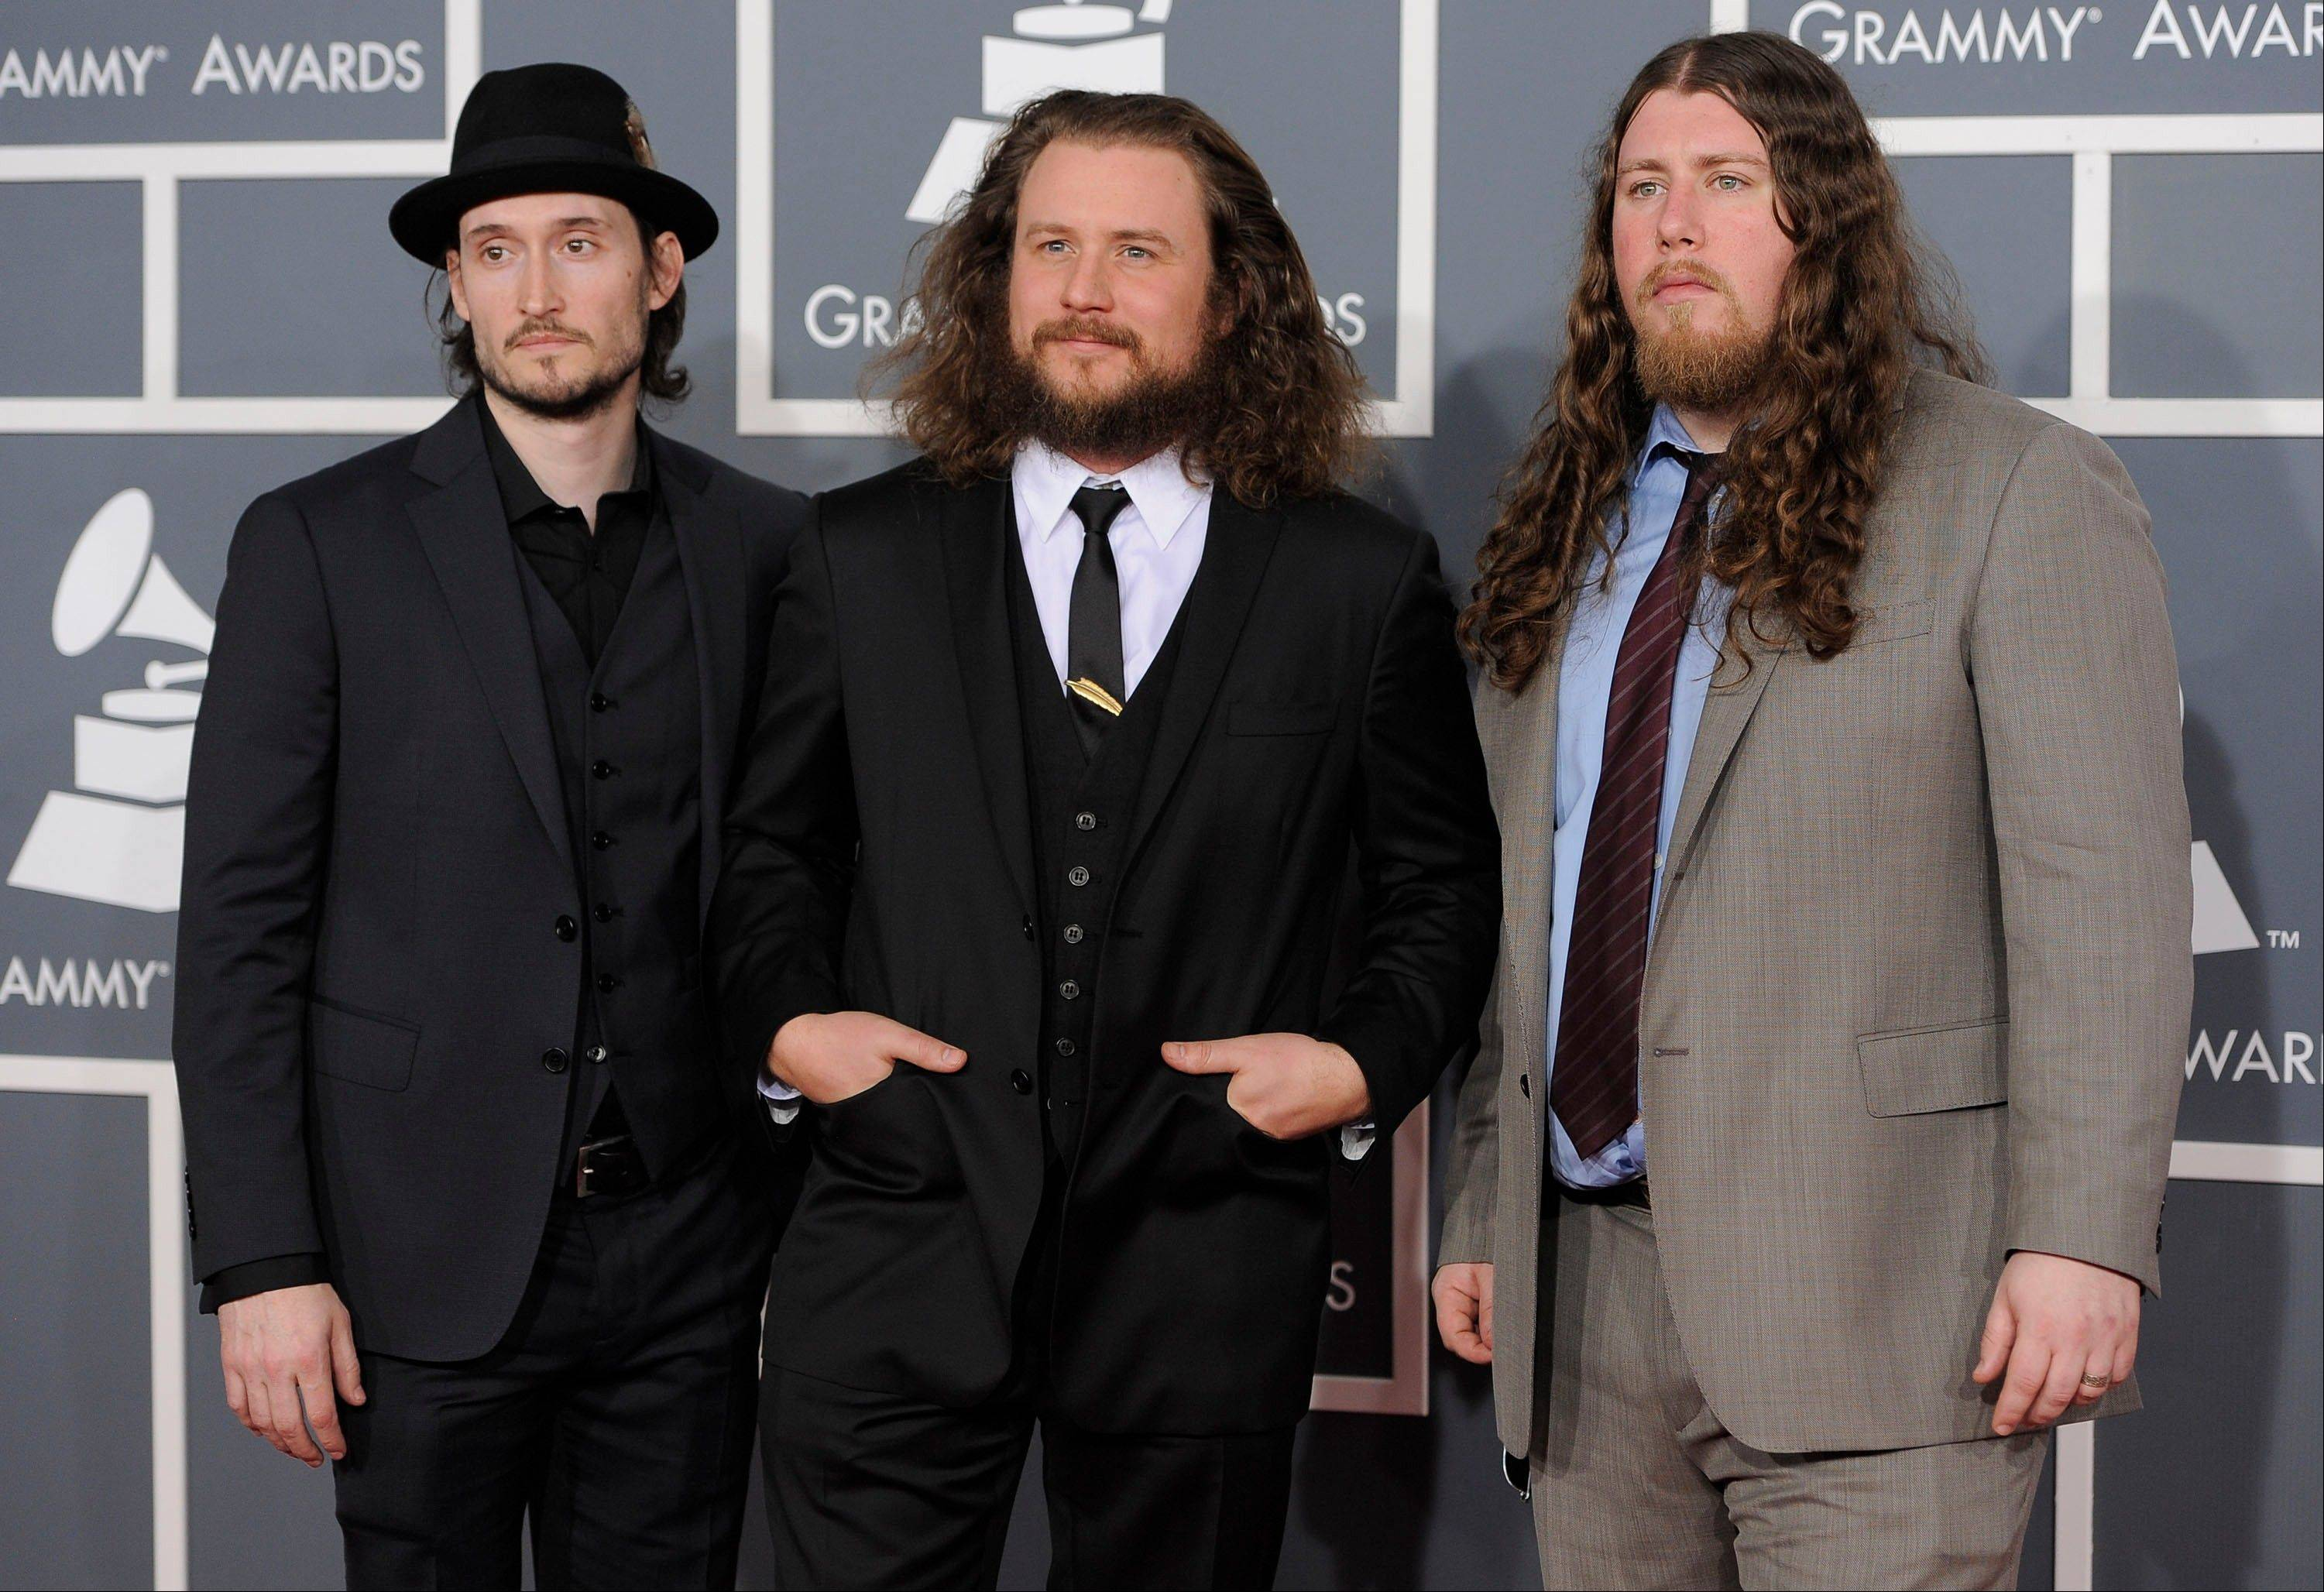 The band My Morning Jacket arrives Sunday at the 54th annual Grammy Awards in Los Angeles.